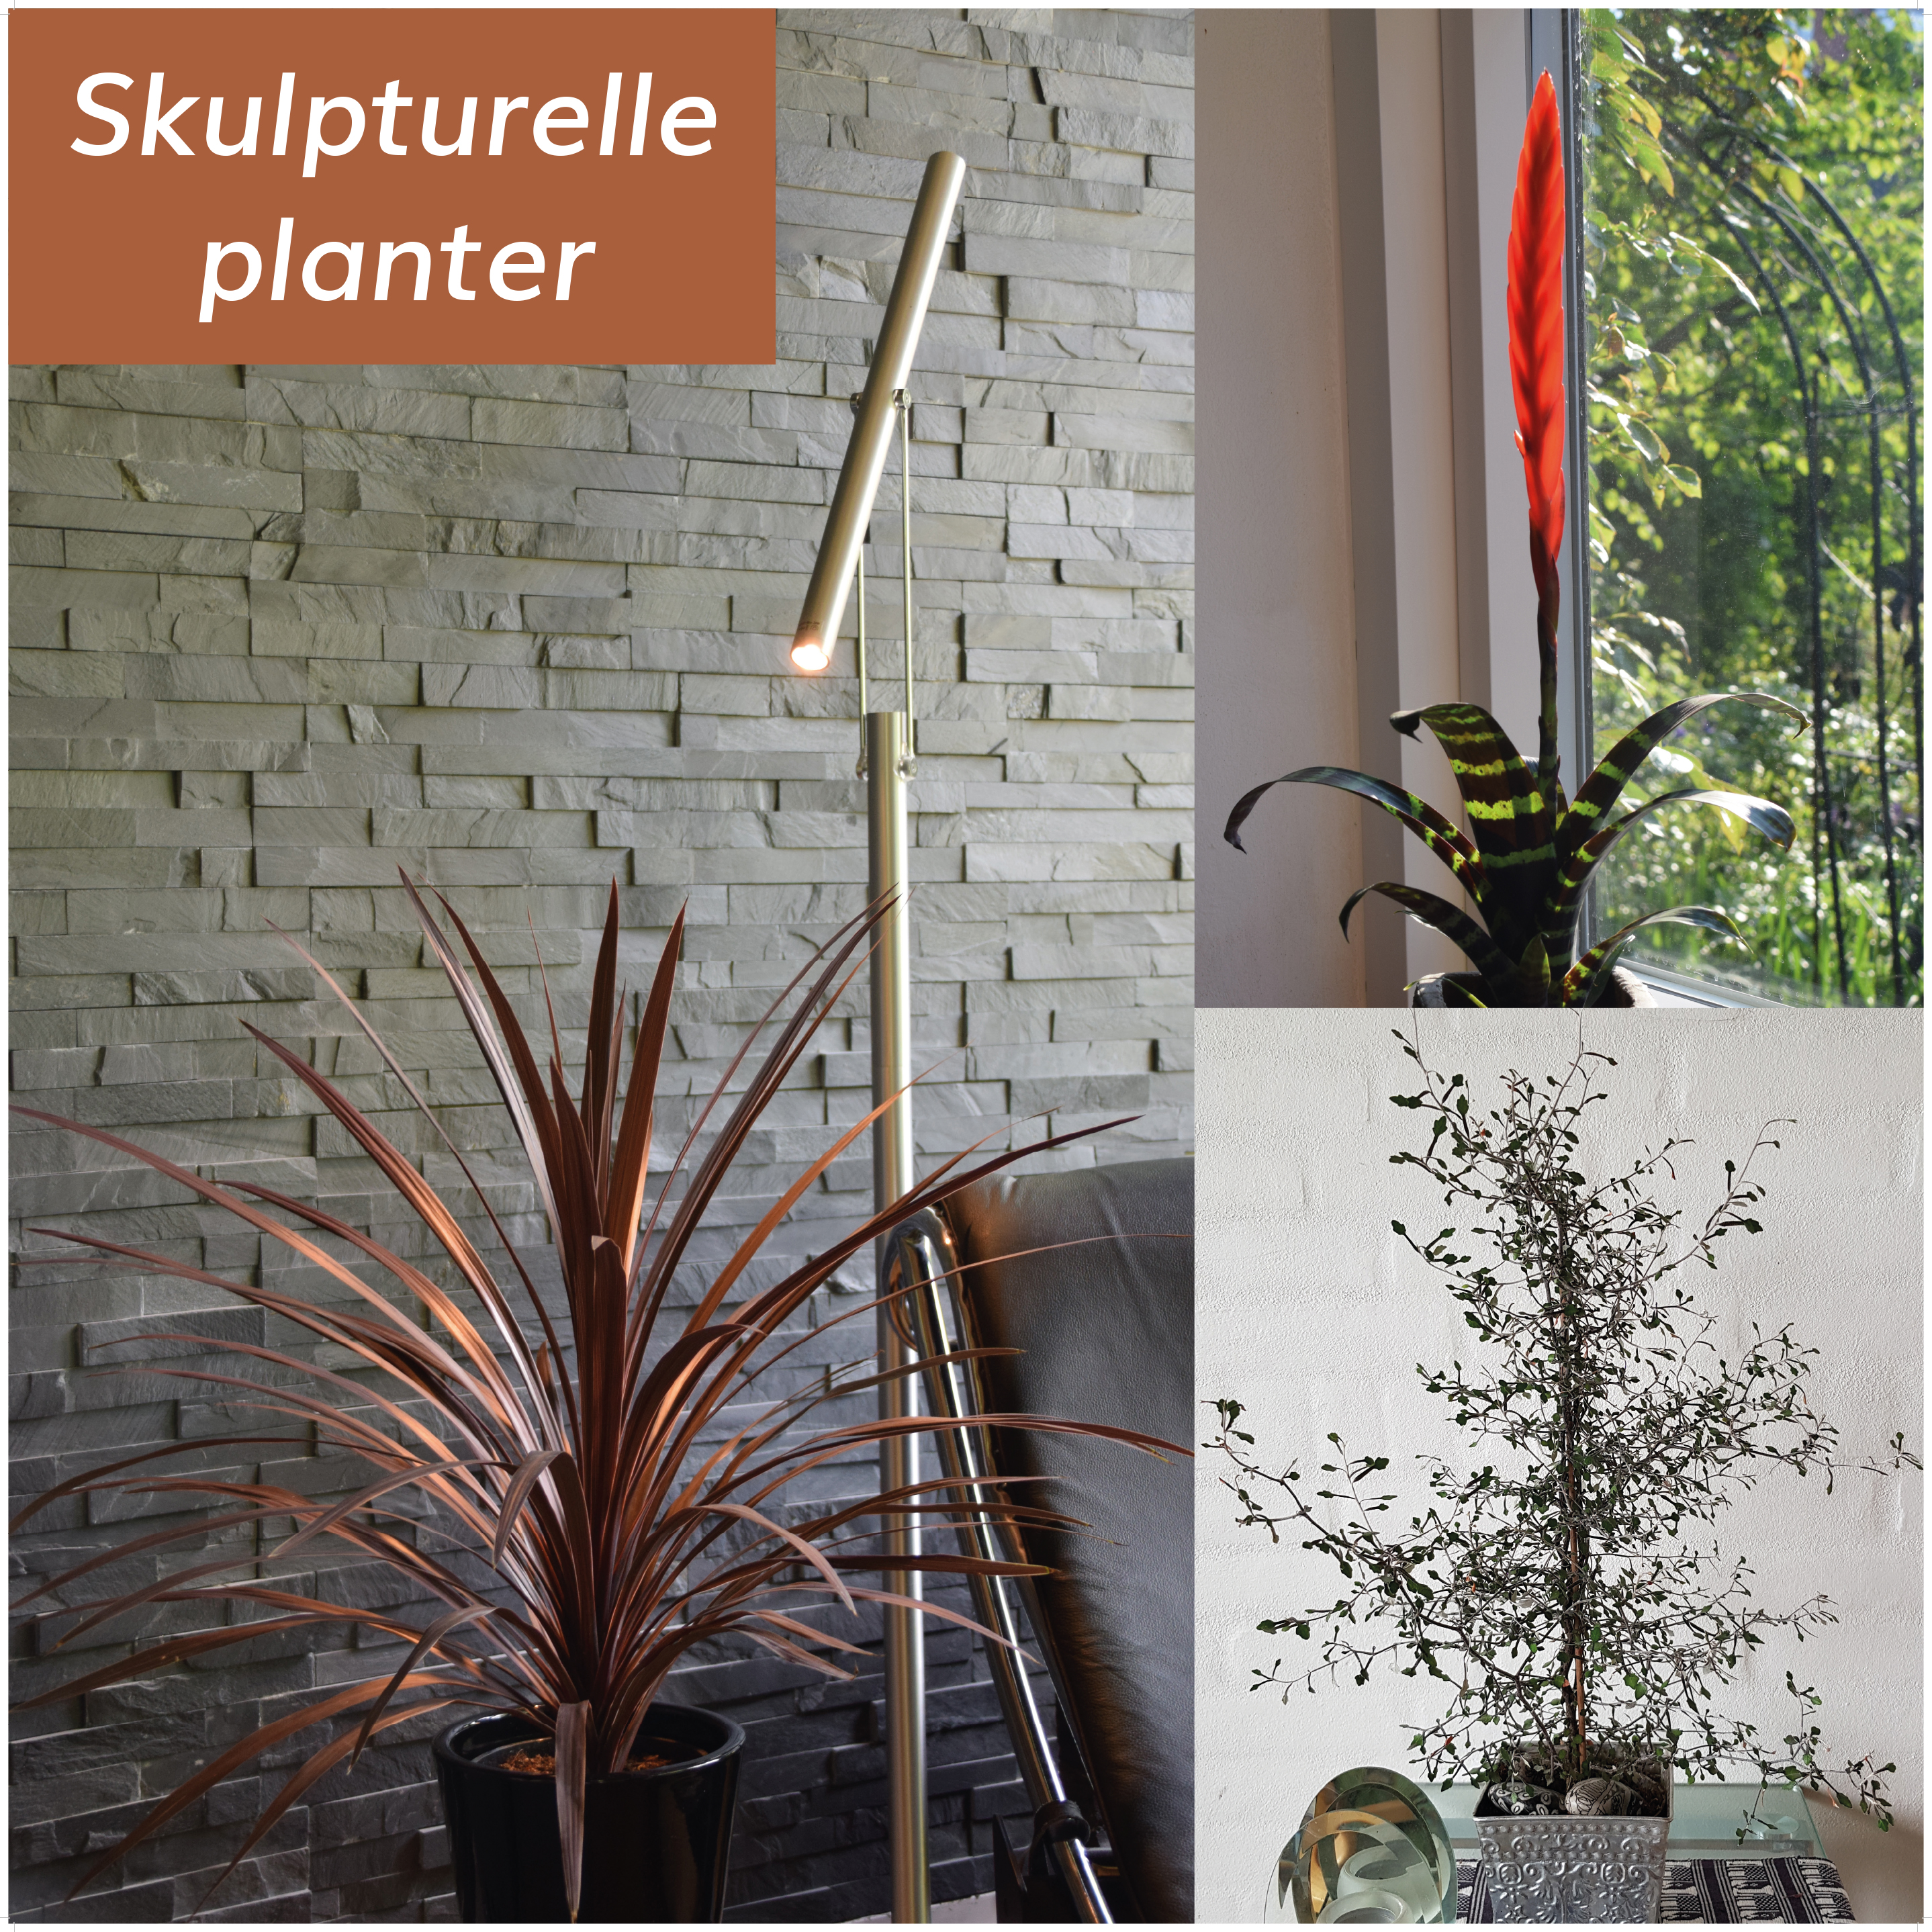 skulpturelle stueplanter